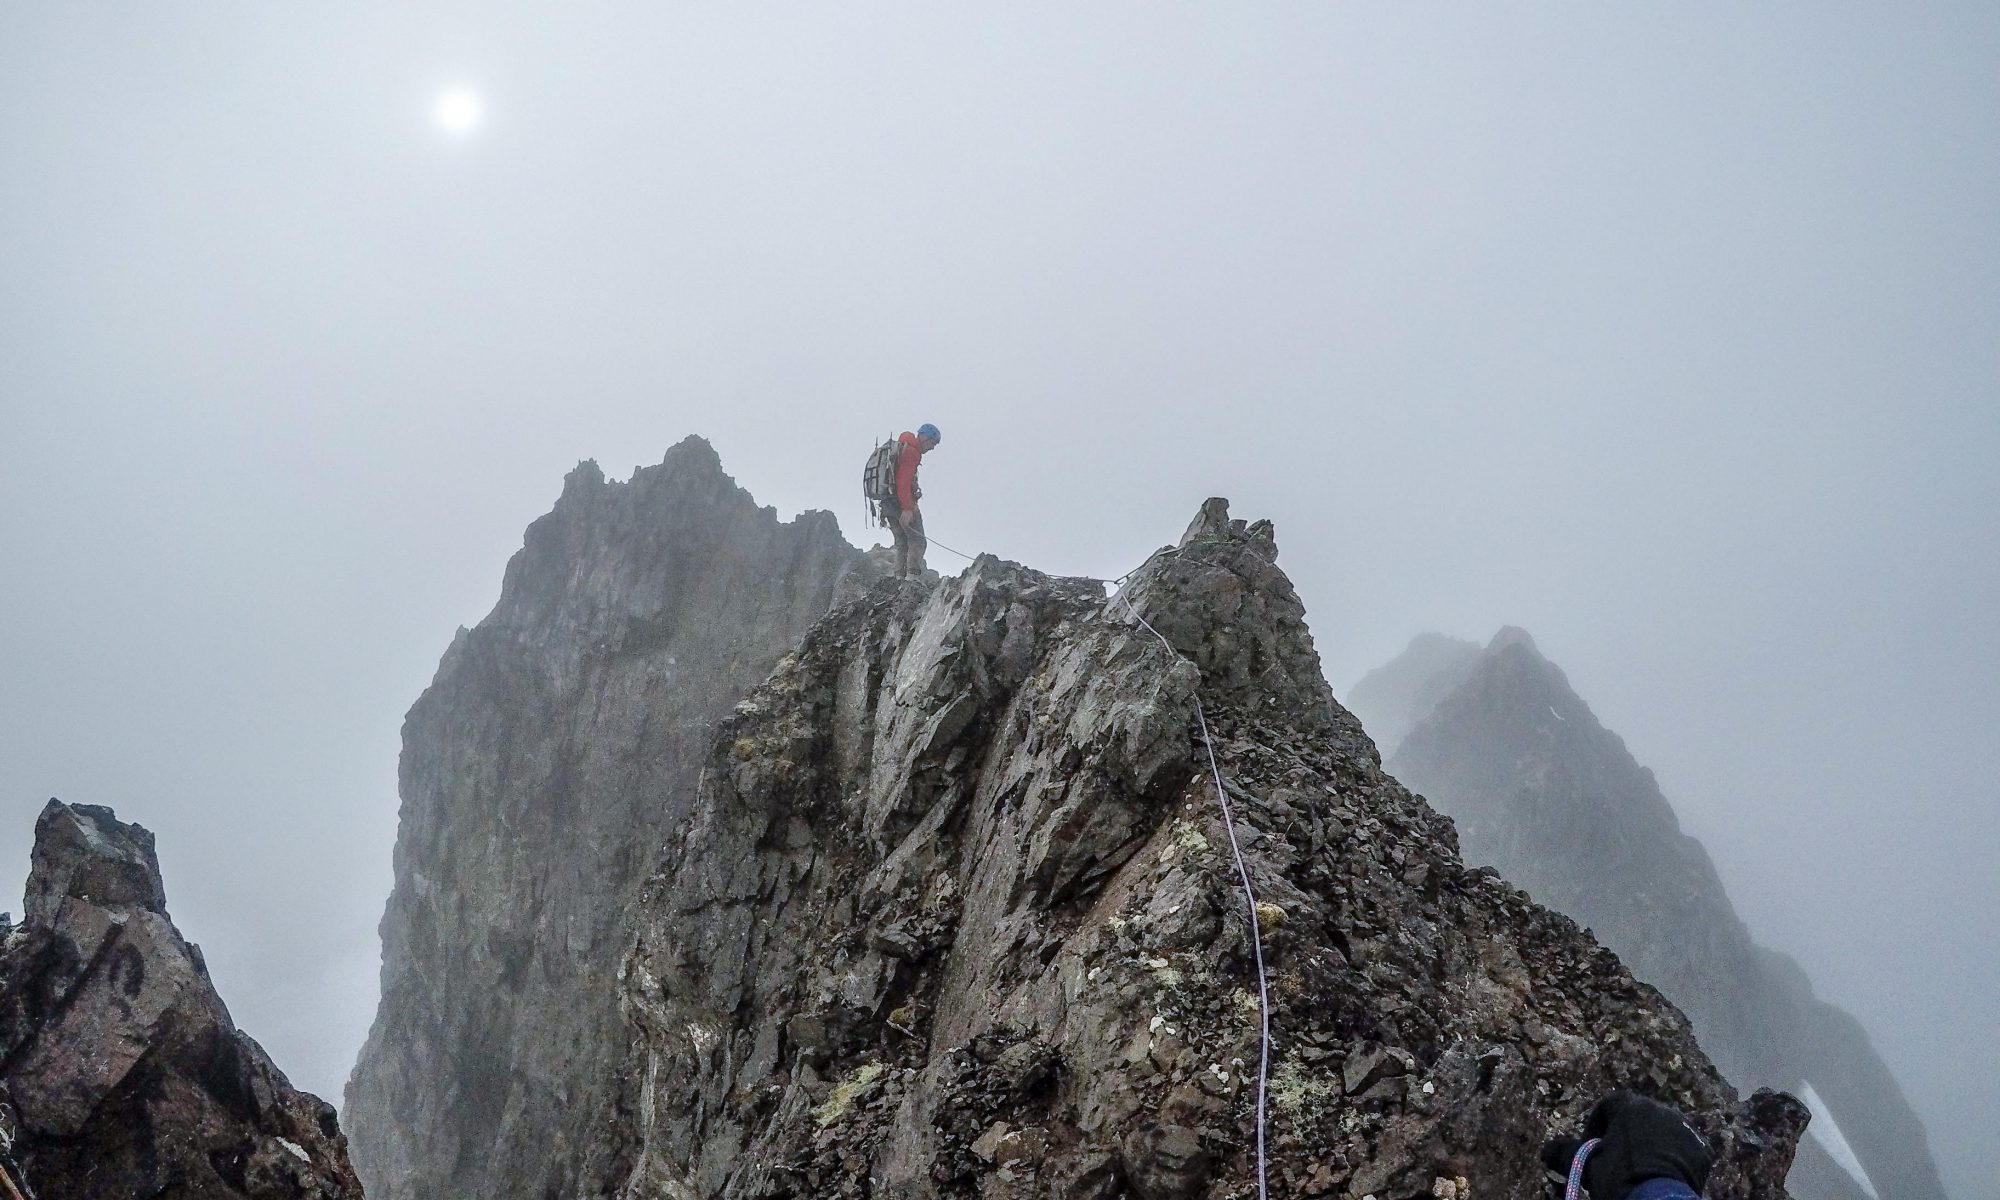 Lee Helzer heading to the summit of Peters Peak